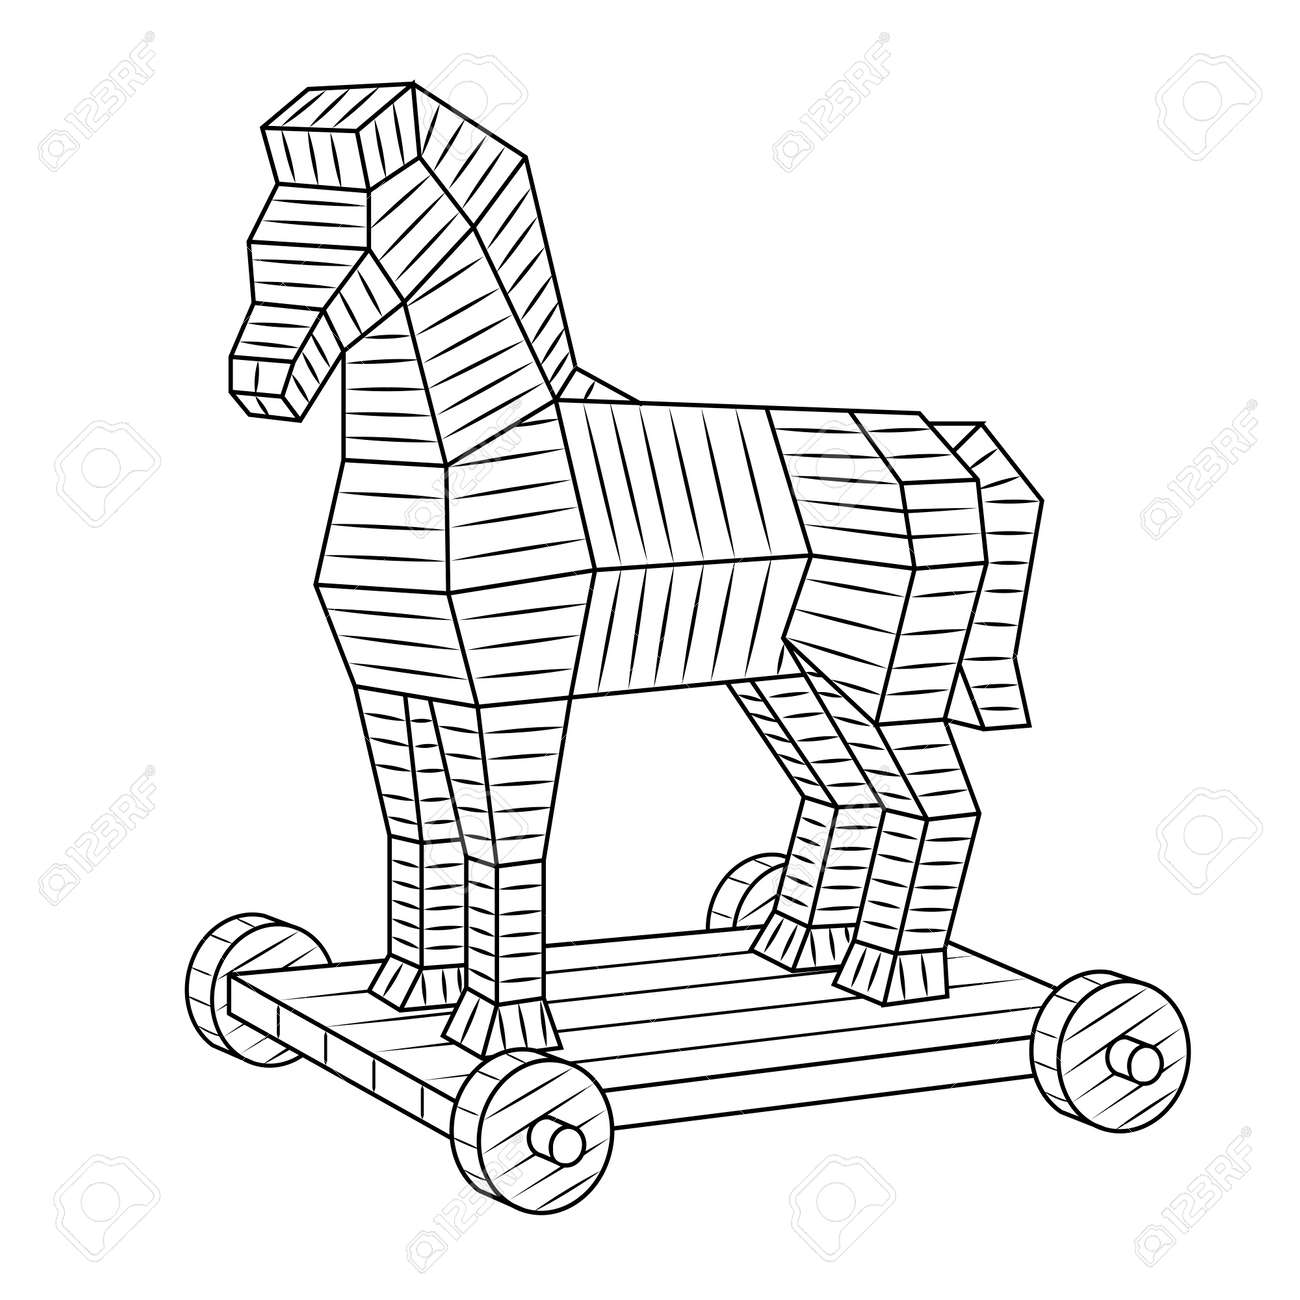 Trojan Horse Coloring Book Vector Royalty Free Cliparts Vectors And Stock Illustration Image 94611190